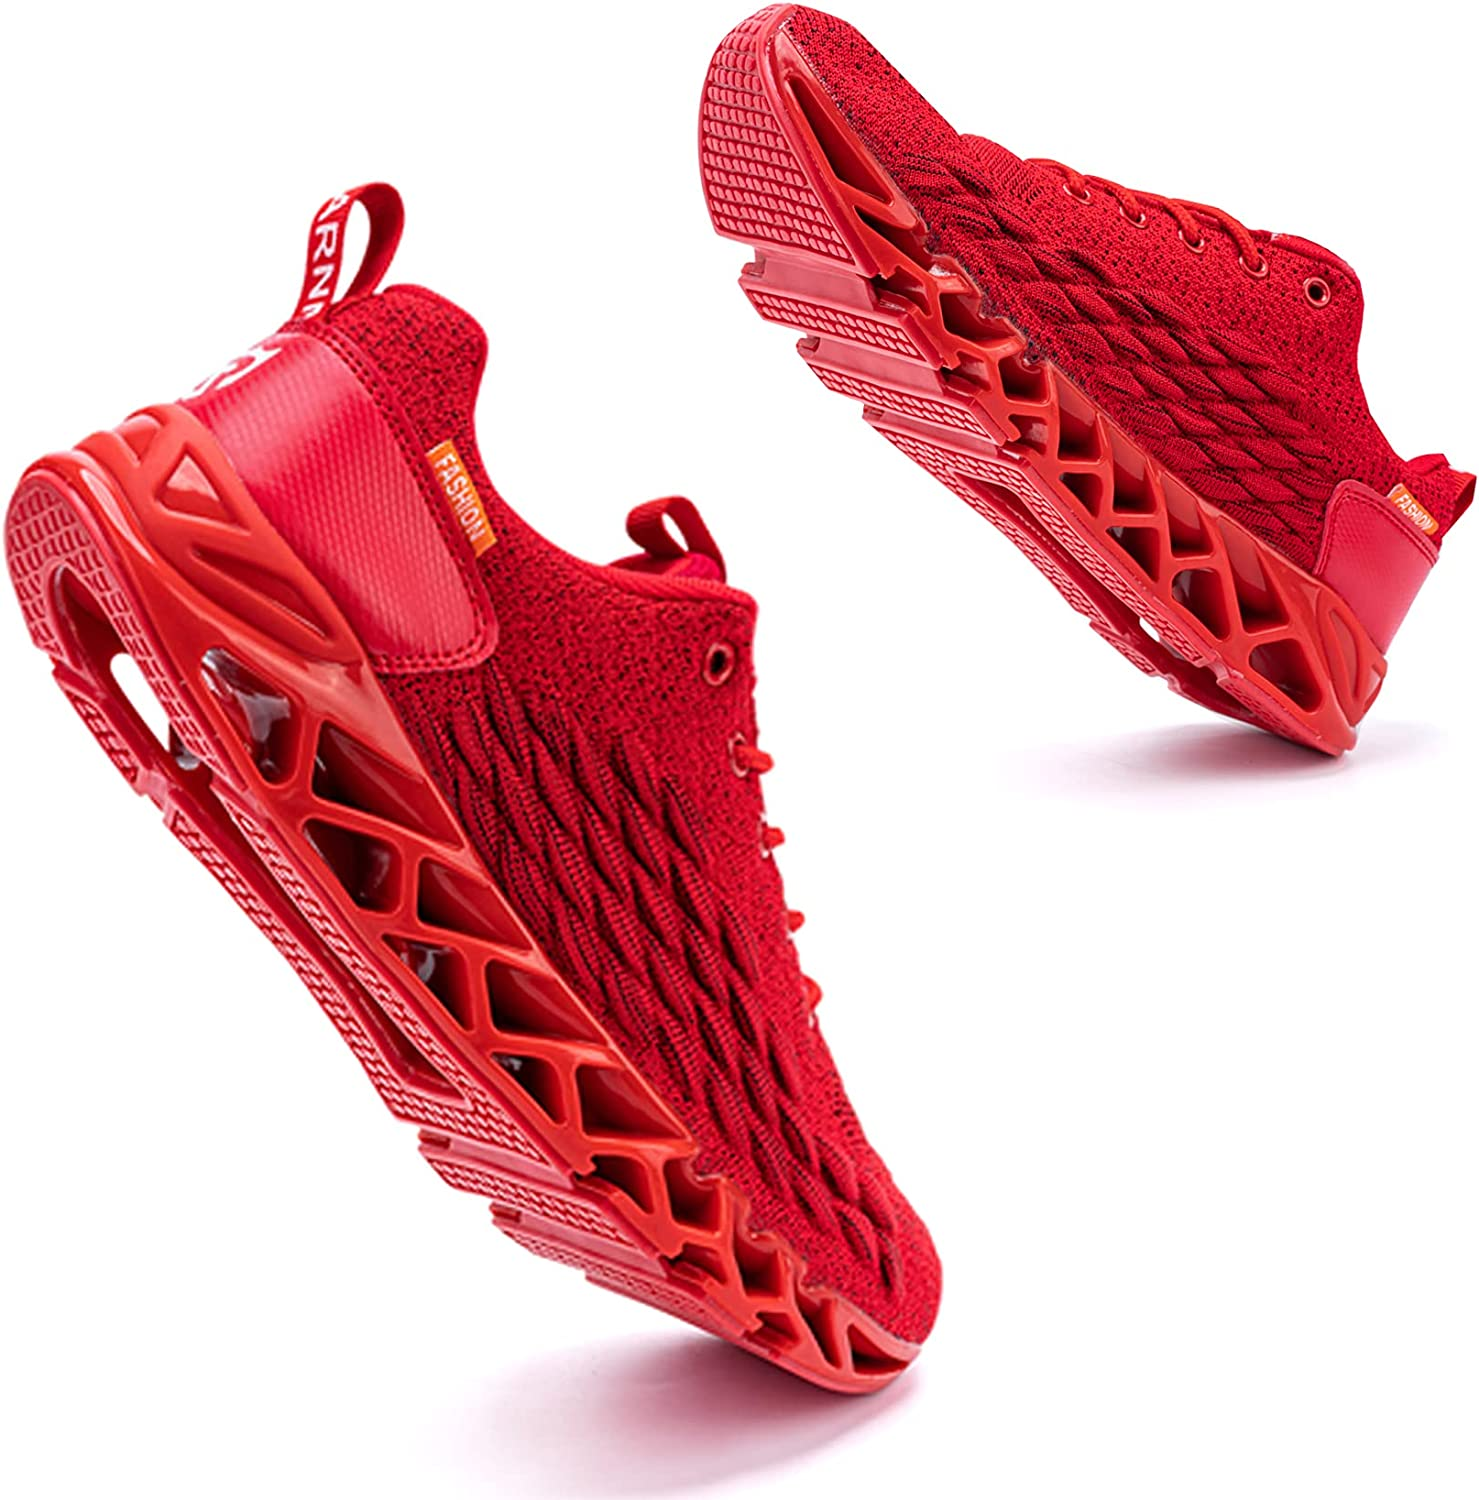 LARNMERN Challenge the lowest price of Japan ☆ PLUS Casual Fashion Walking 35% OFF Sport for Men Running Shoes